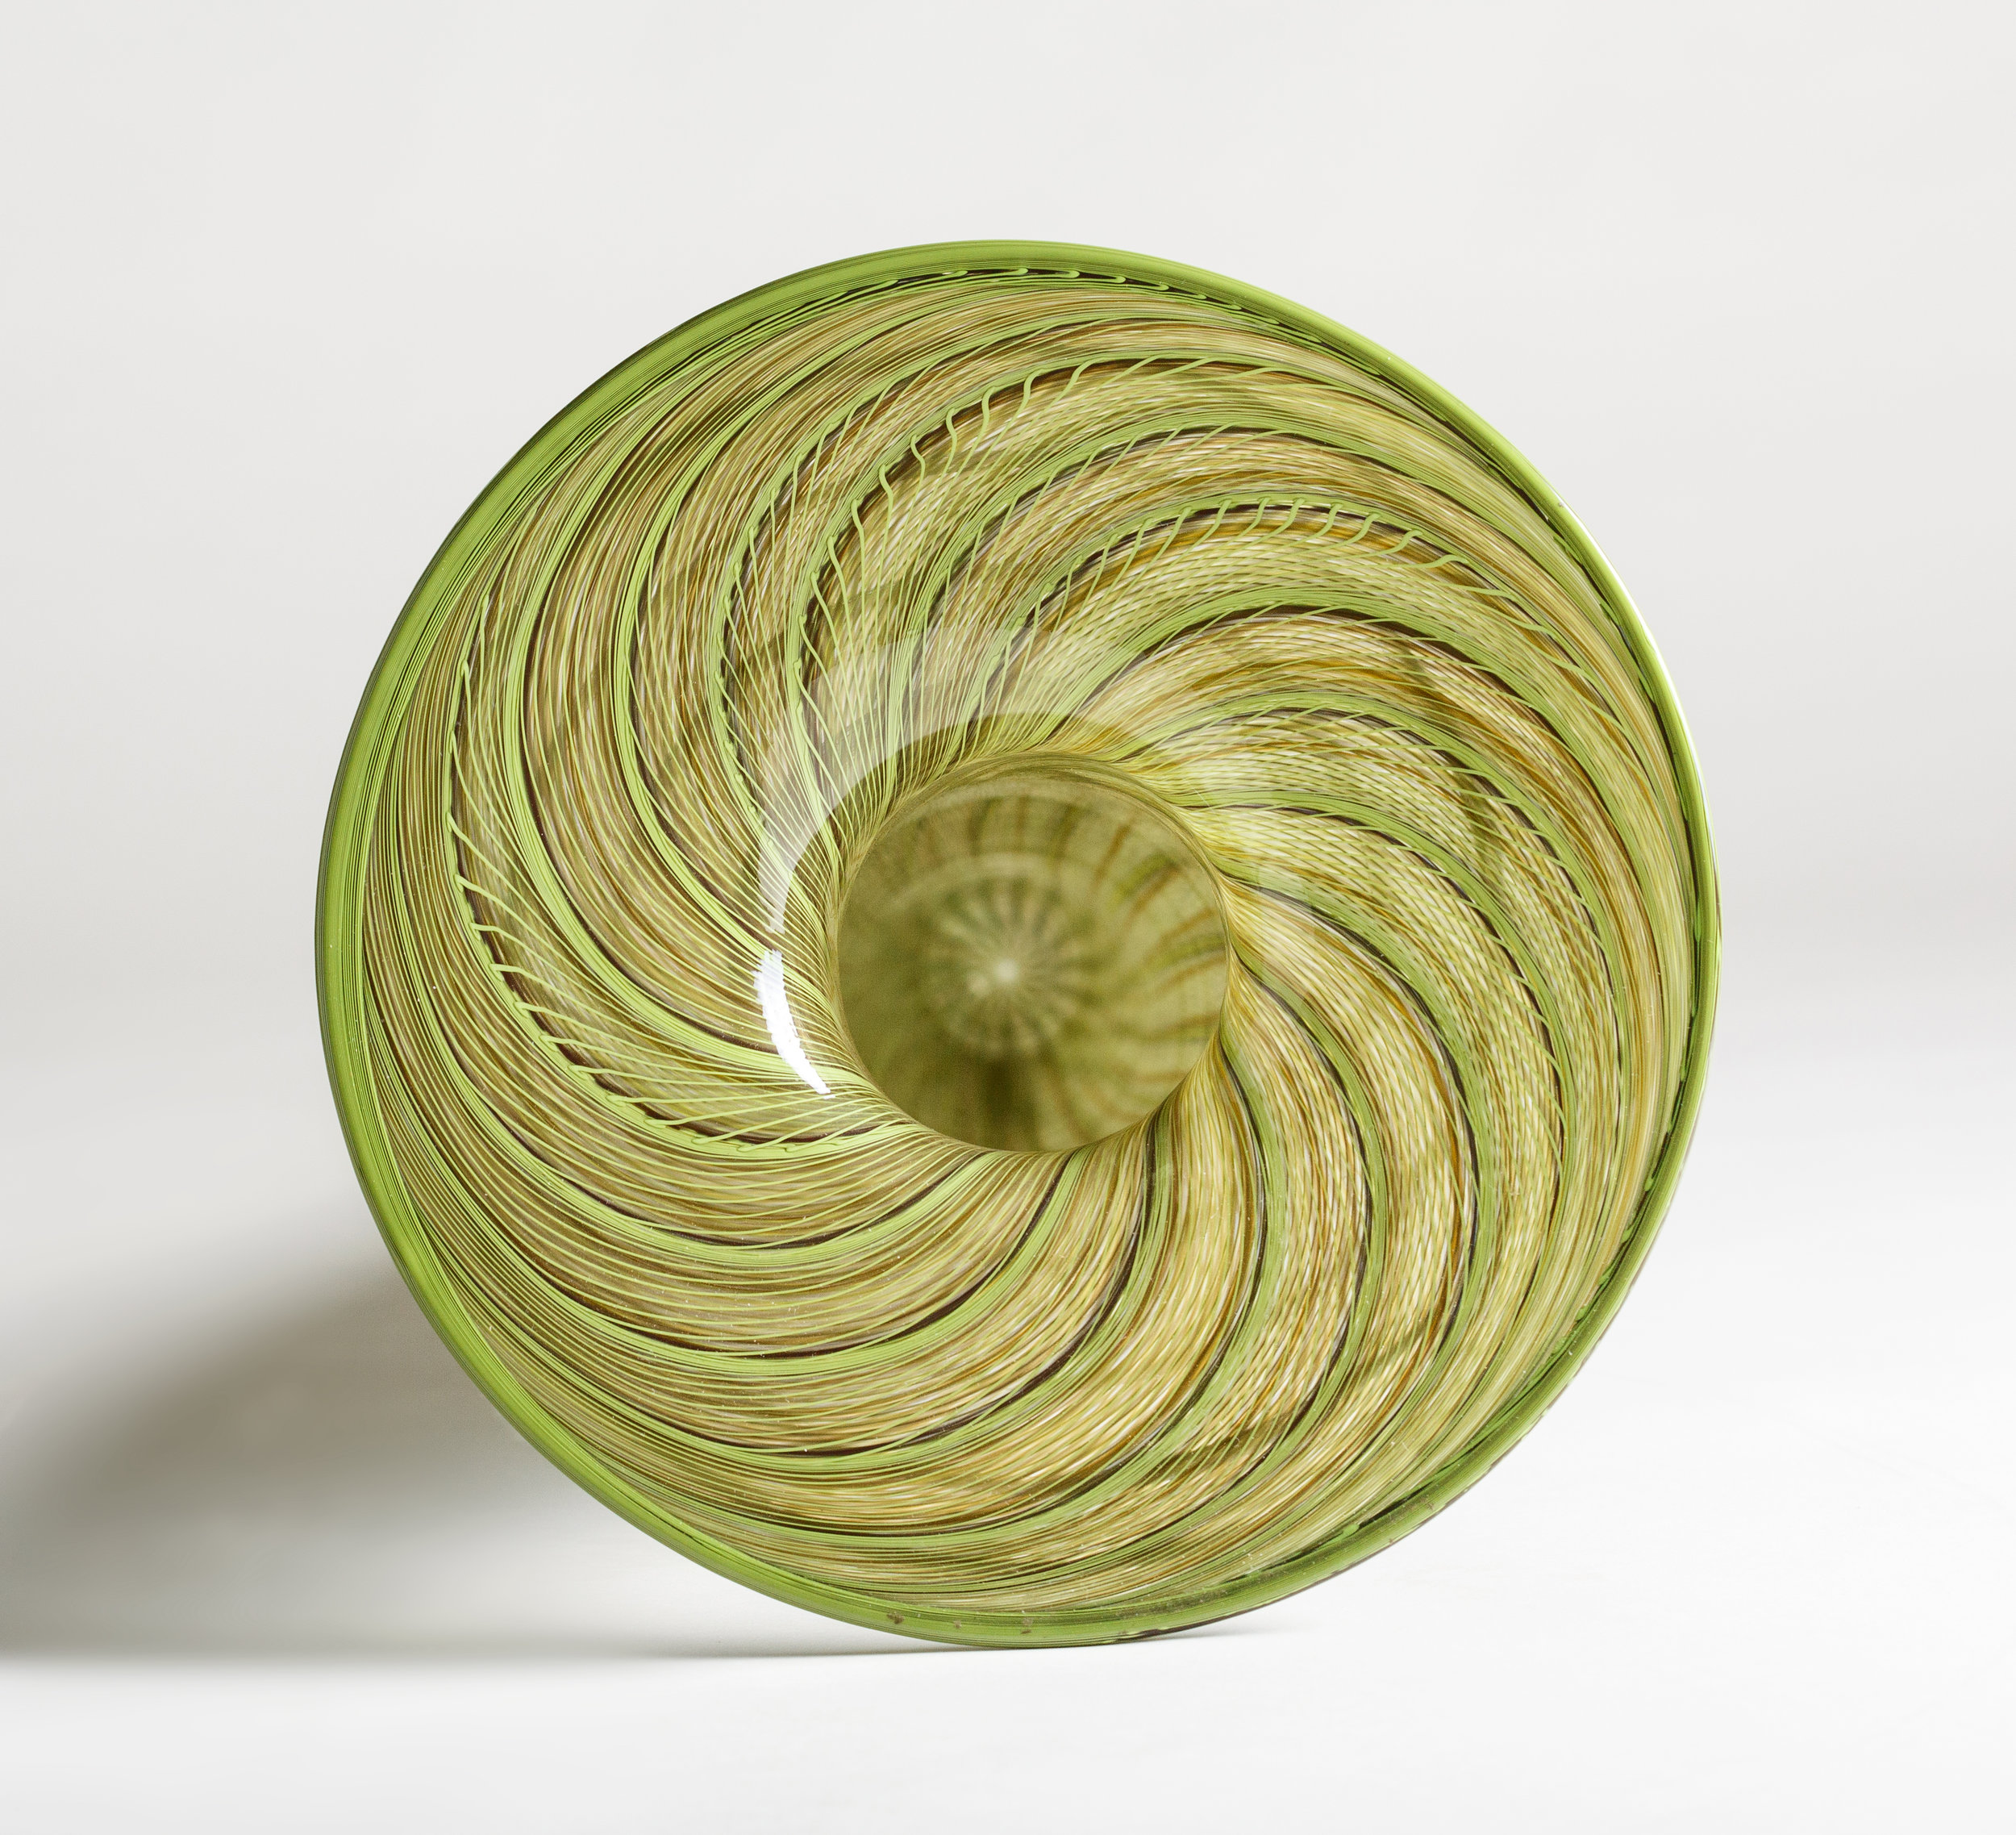 Jenni Kemarre Martiniello  Medium Green Reeds Eel Trap #4  - hot blown glass with canes, 28 x 95 x 28 cm, 2015   EMAIL INQUIRY